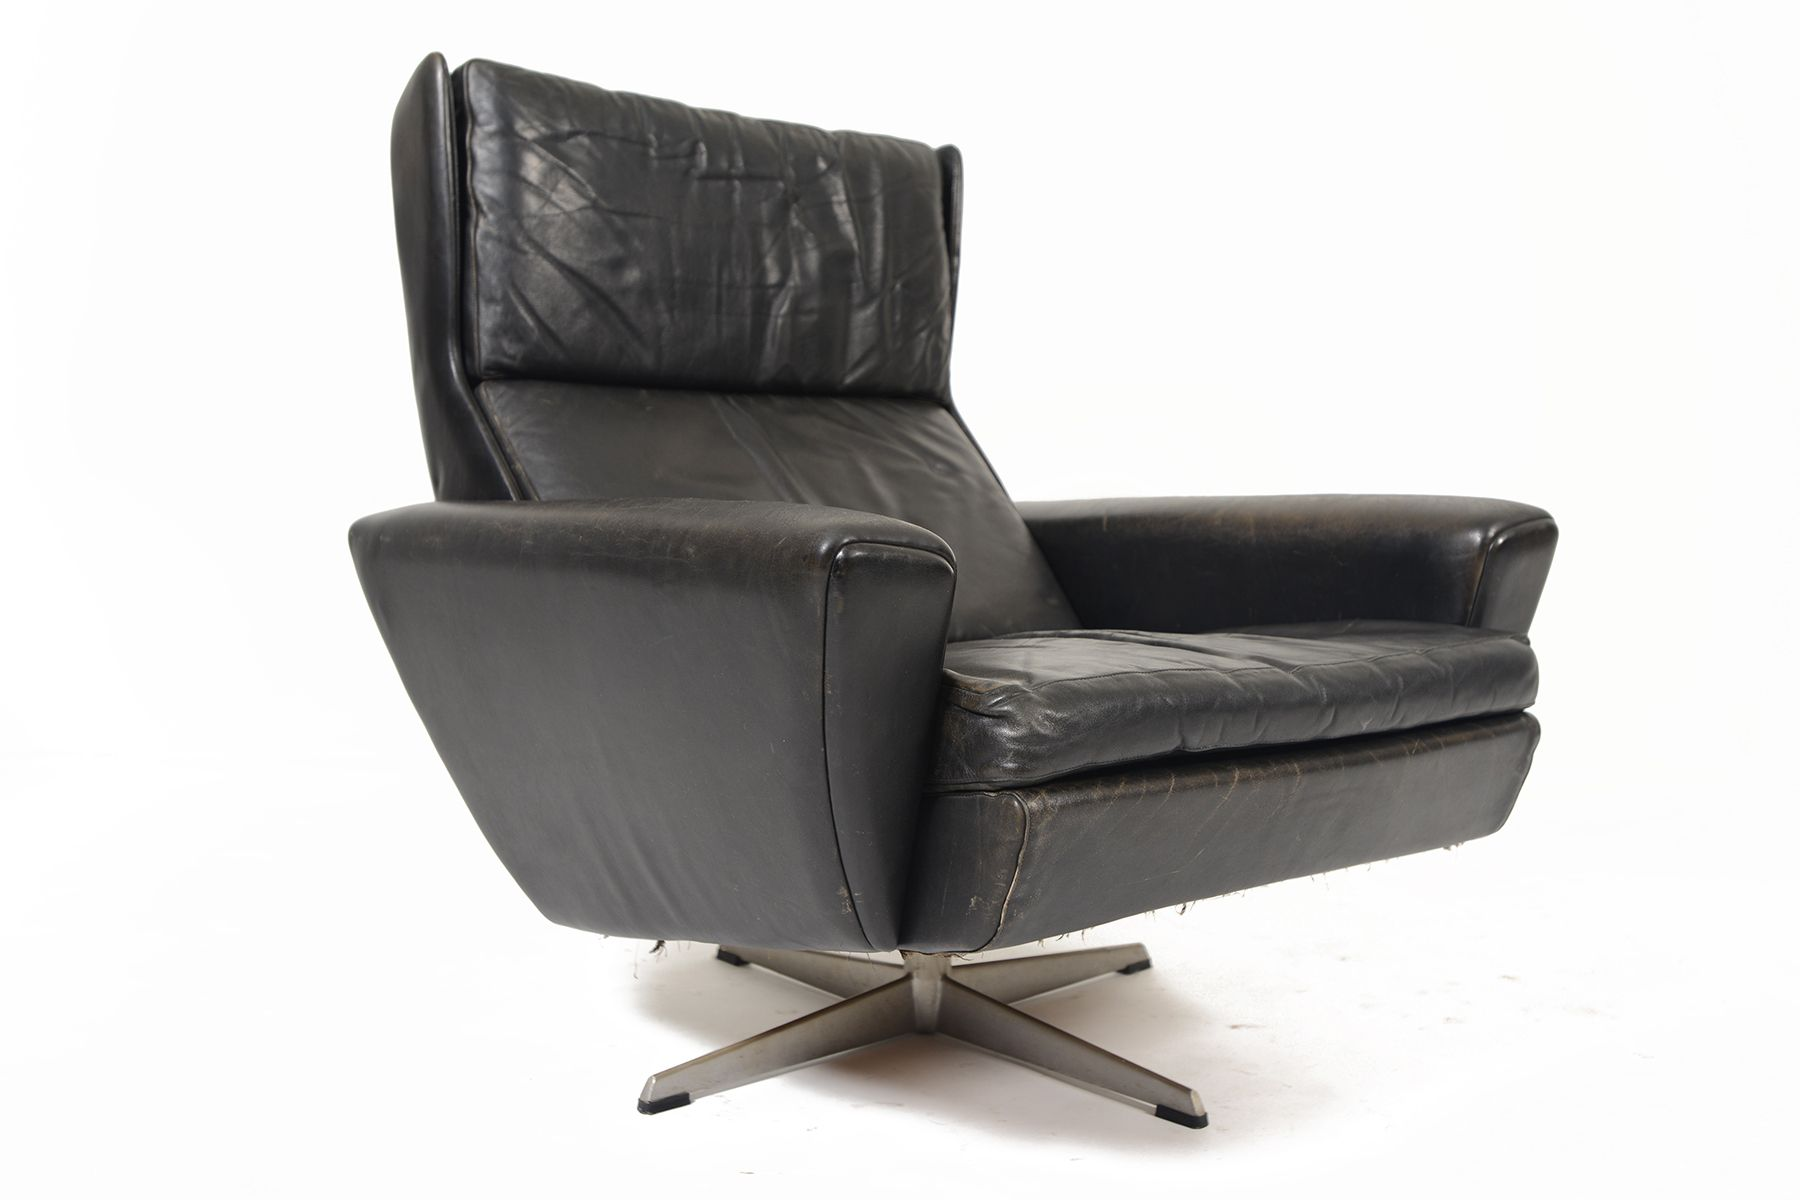 Peachy Georg Thams Highback Swivel Chair In Black Leather Mid Caraccident5 Cool Chair Designs And Ideas Caraccident5Info